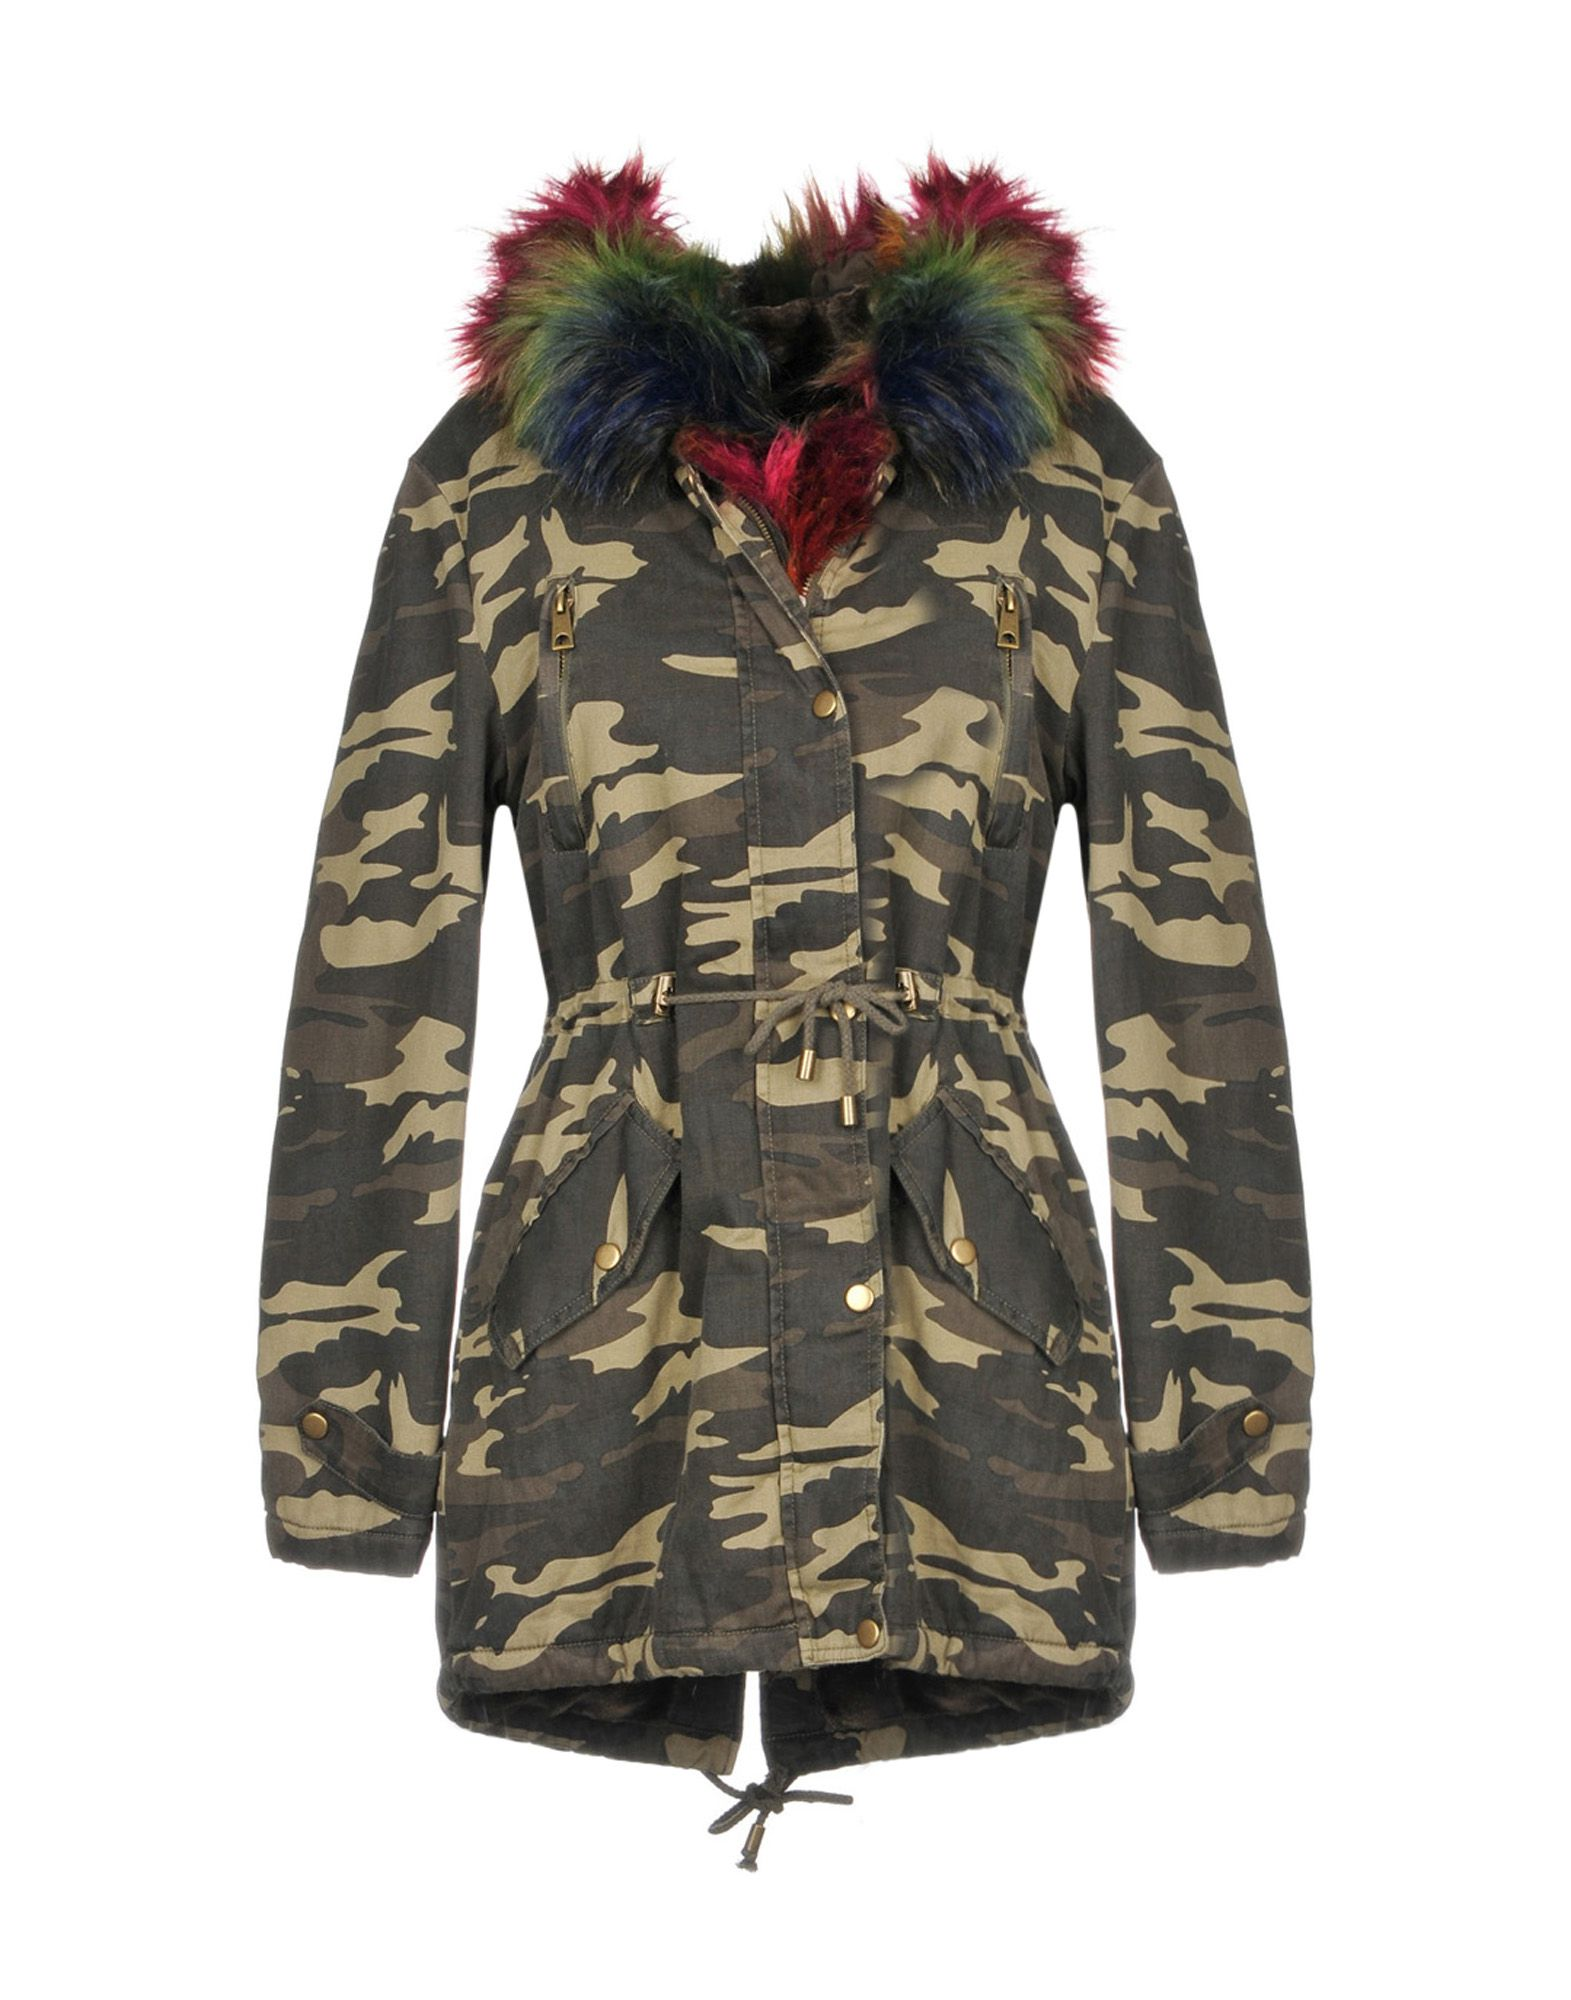 MOLLY BRACKEN Jacket in Military Green